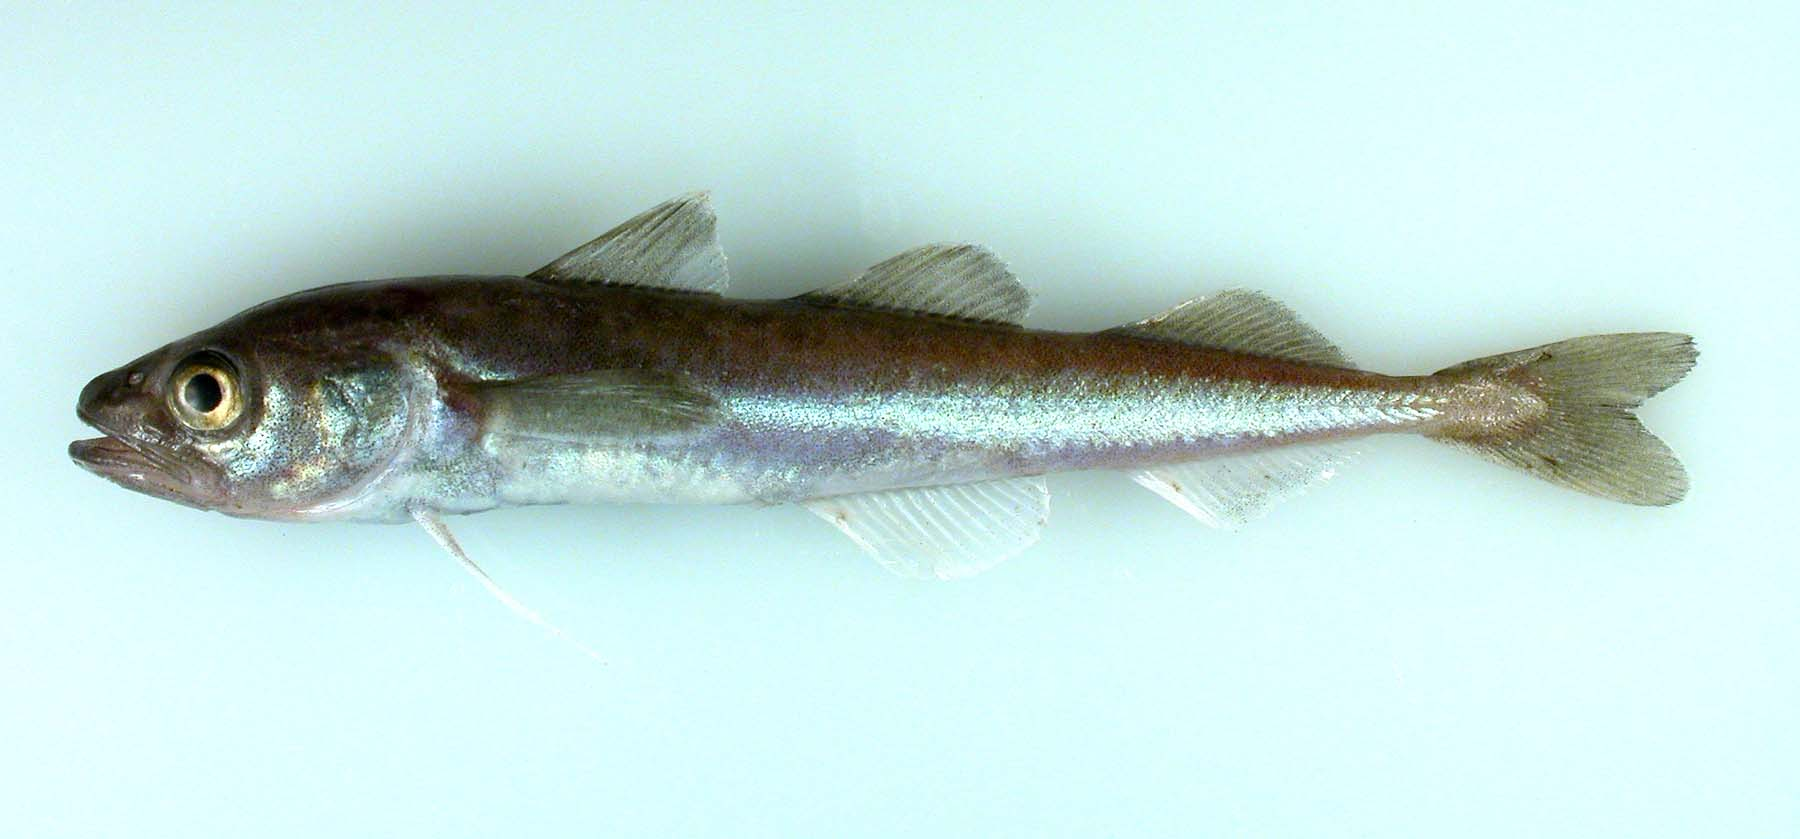 Arctic cod. (Photo courtesy of NOAA)